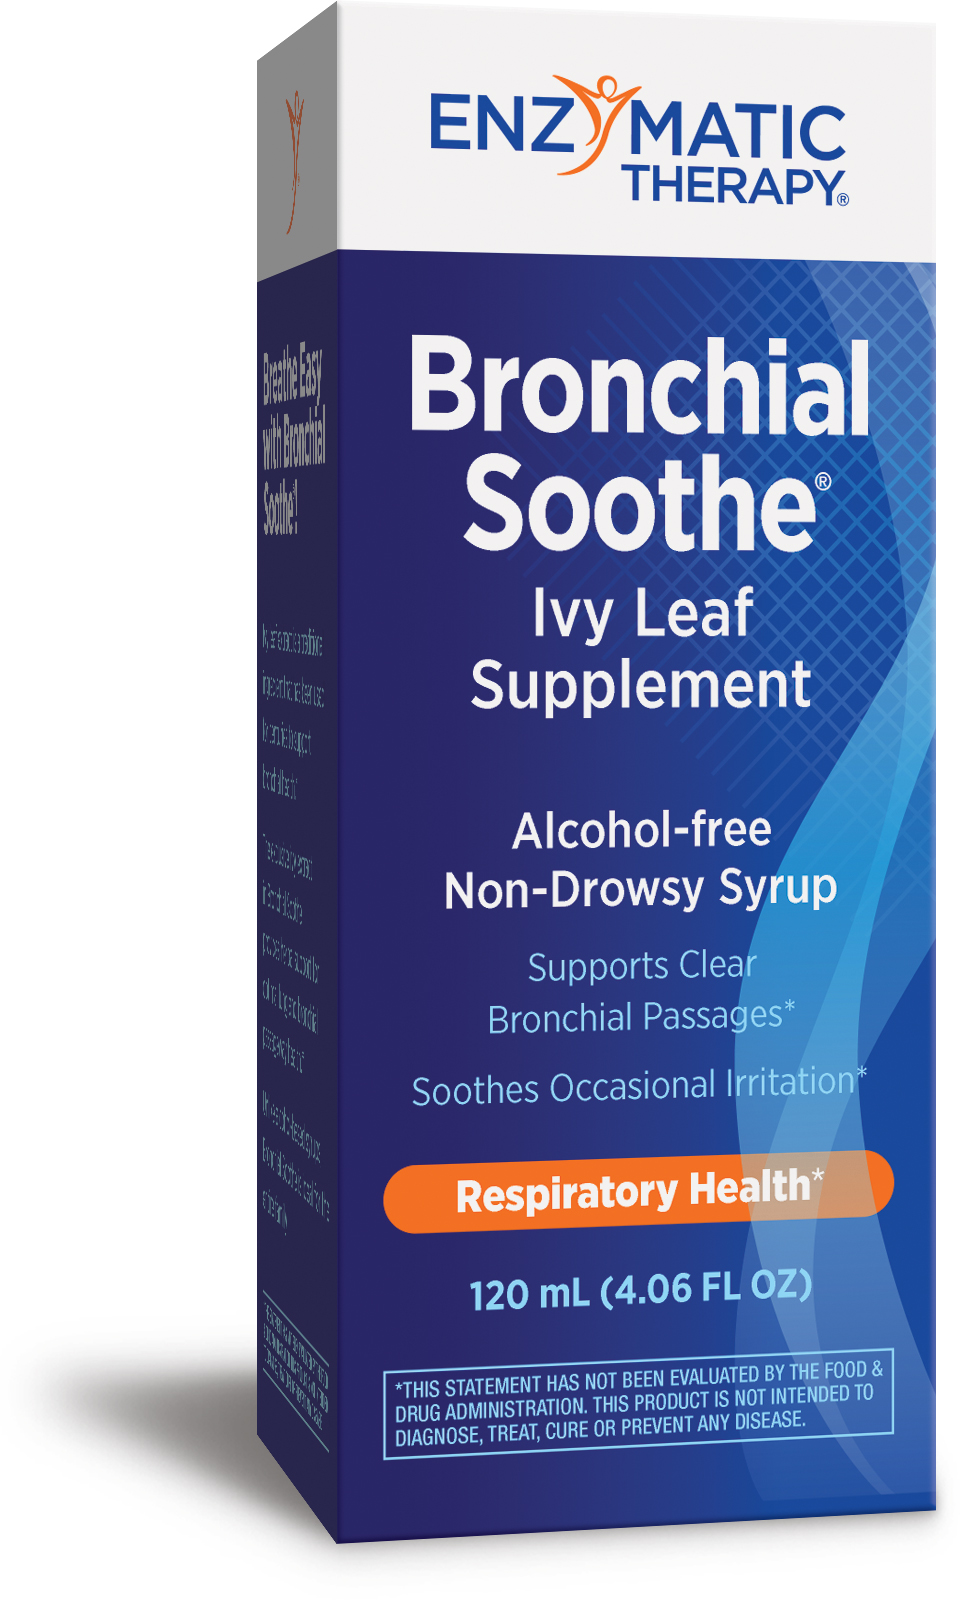 Bronchial Soothe Ivy Leaf Supplement 100 ml (3.4 fl oz) by Enzymatic Therapy